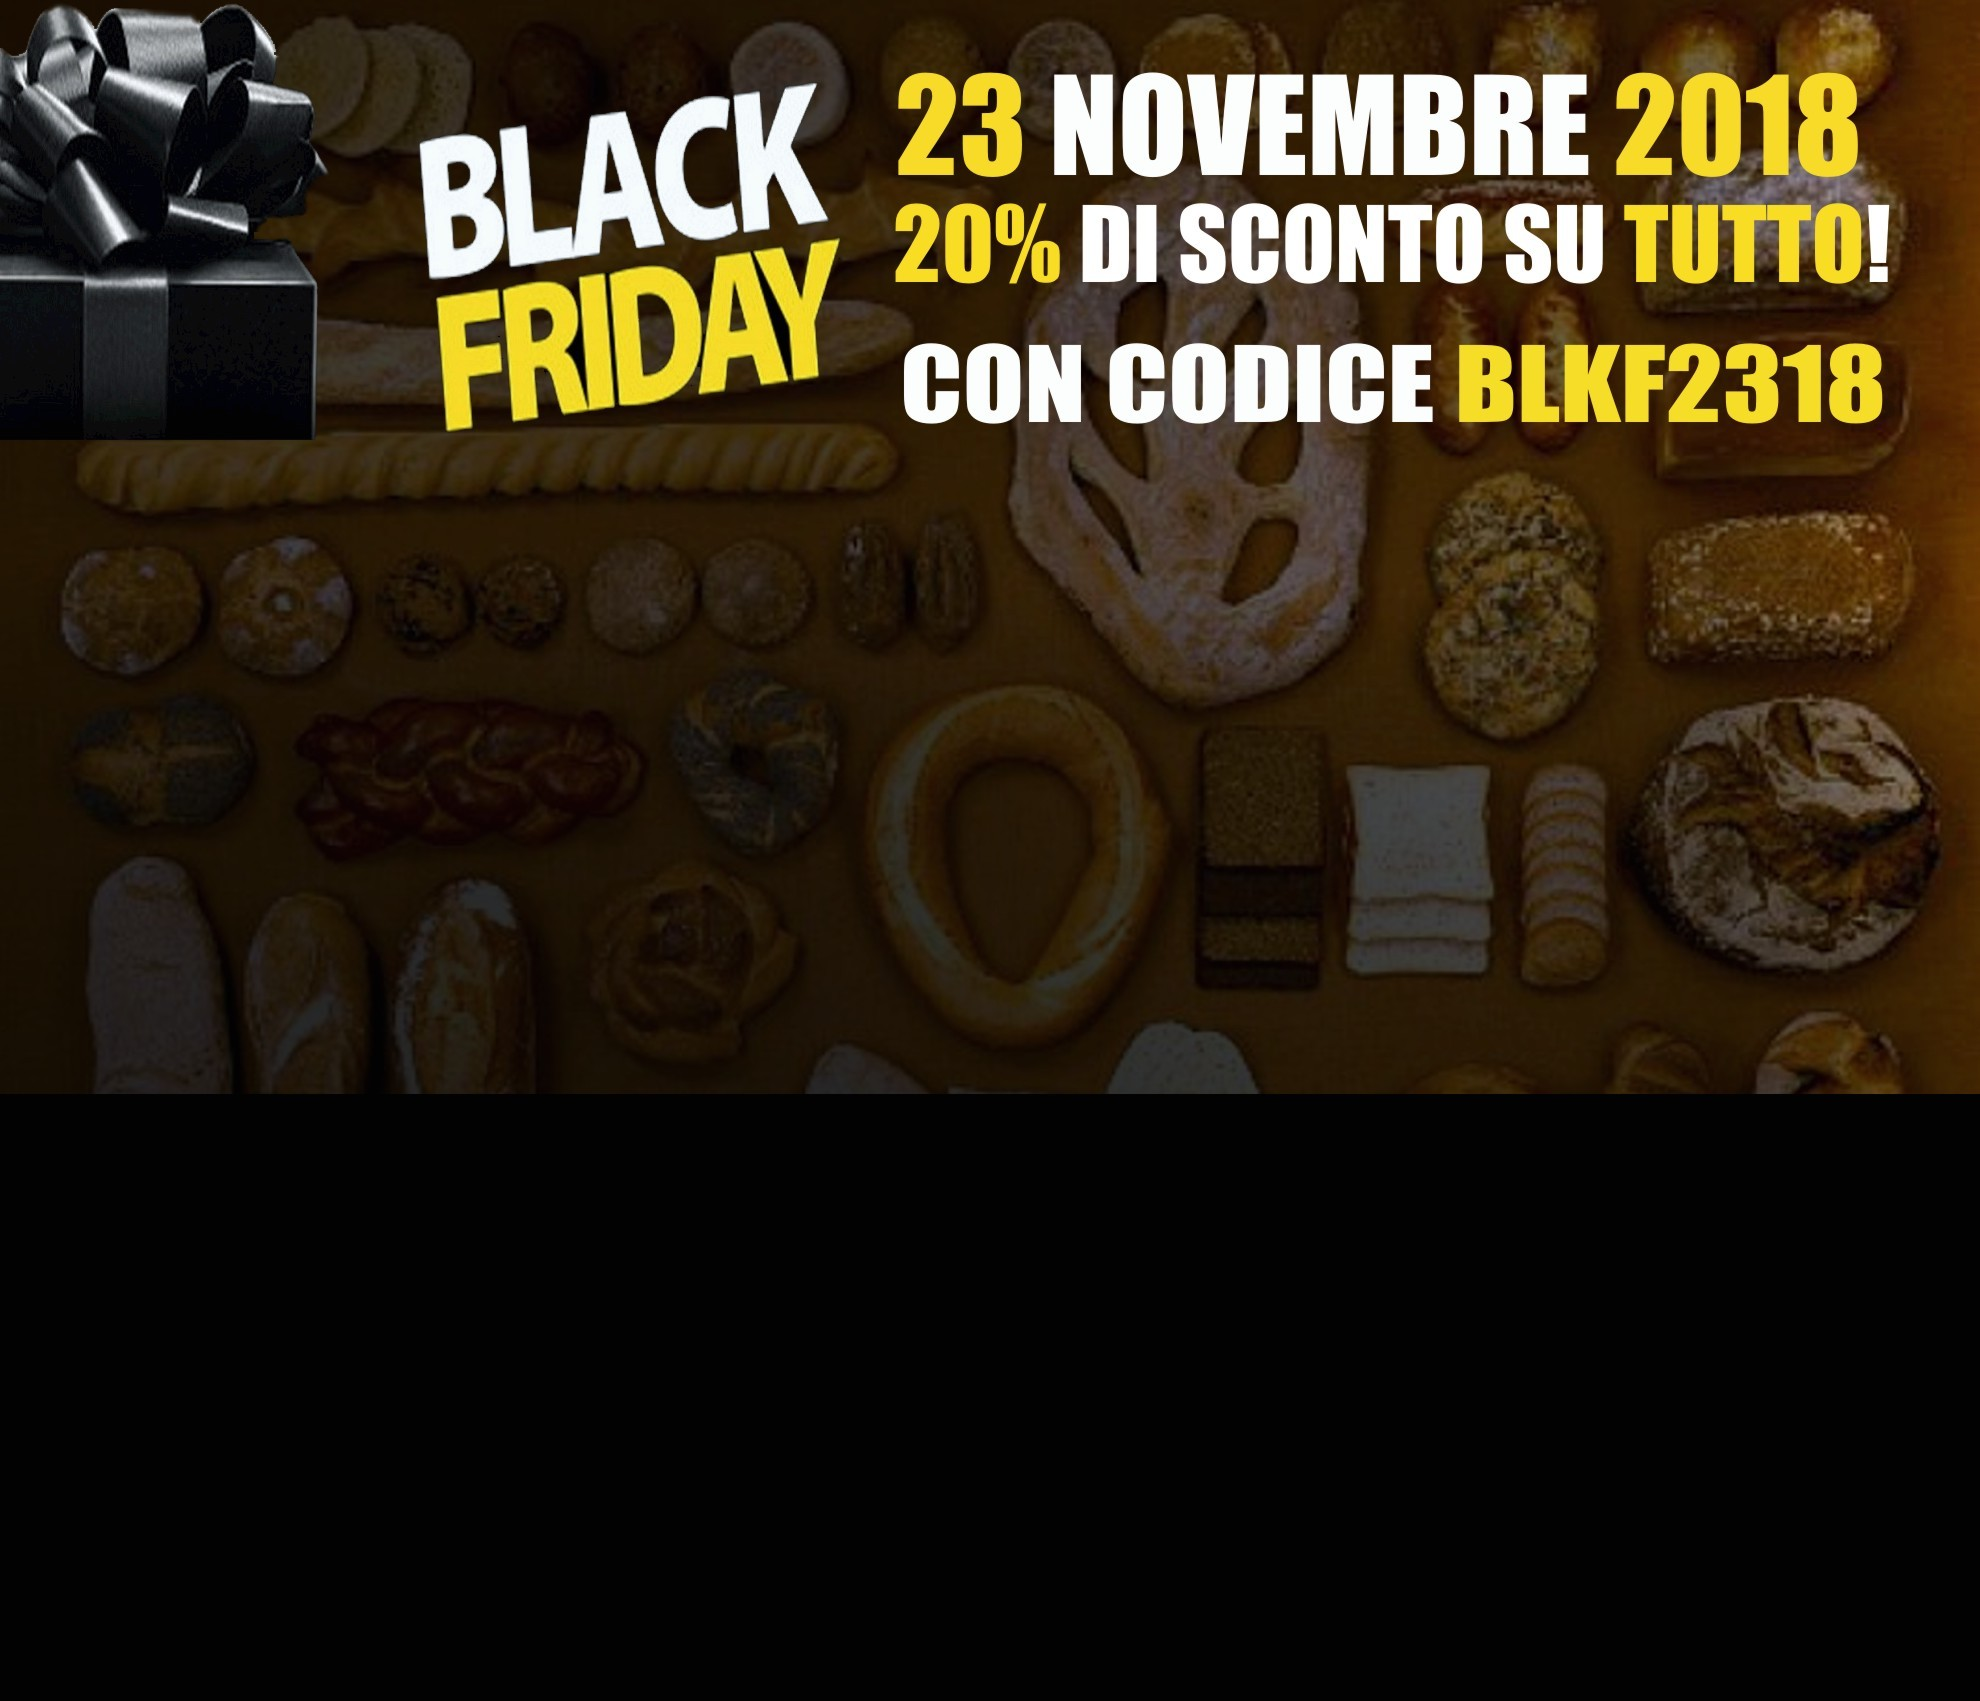 Black Friday 23 novembre 2018